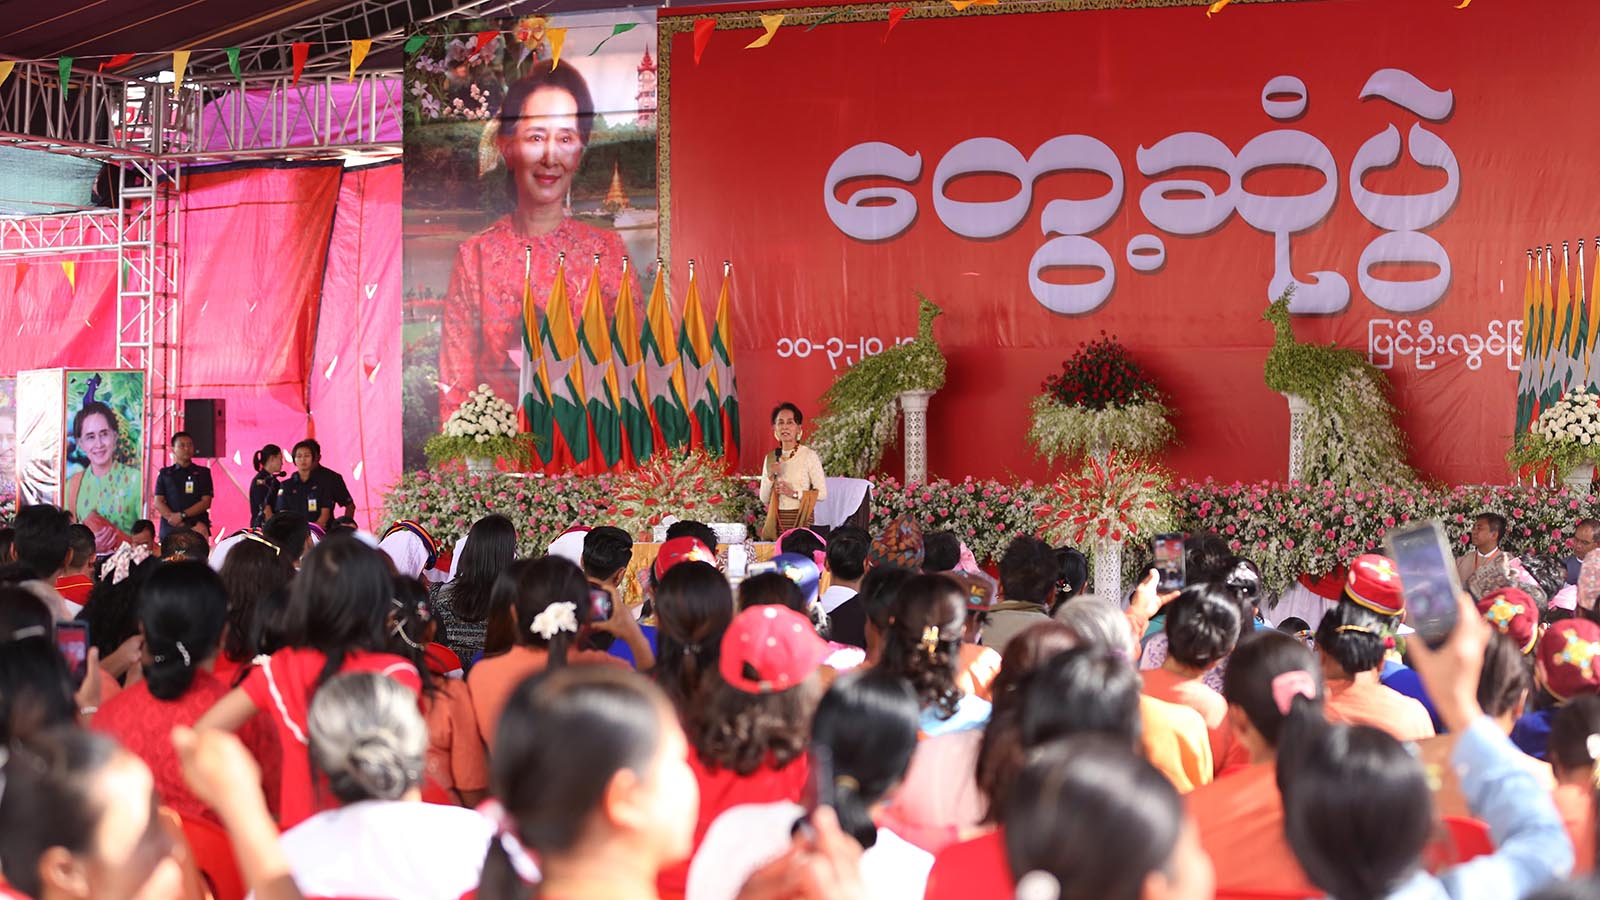 State Counsellor Daw Aung San Suu Kyi speaks at the public meeting in PyinOoLwin.Photo: MNA